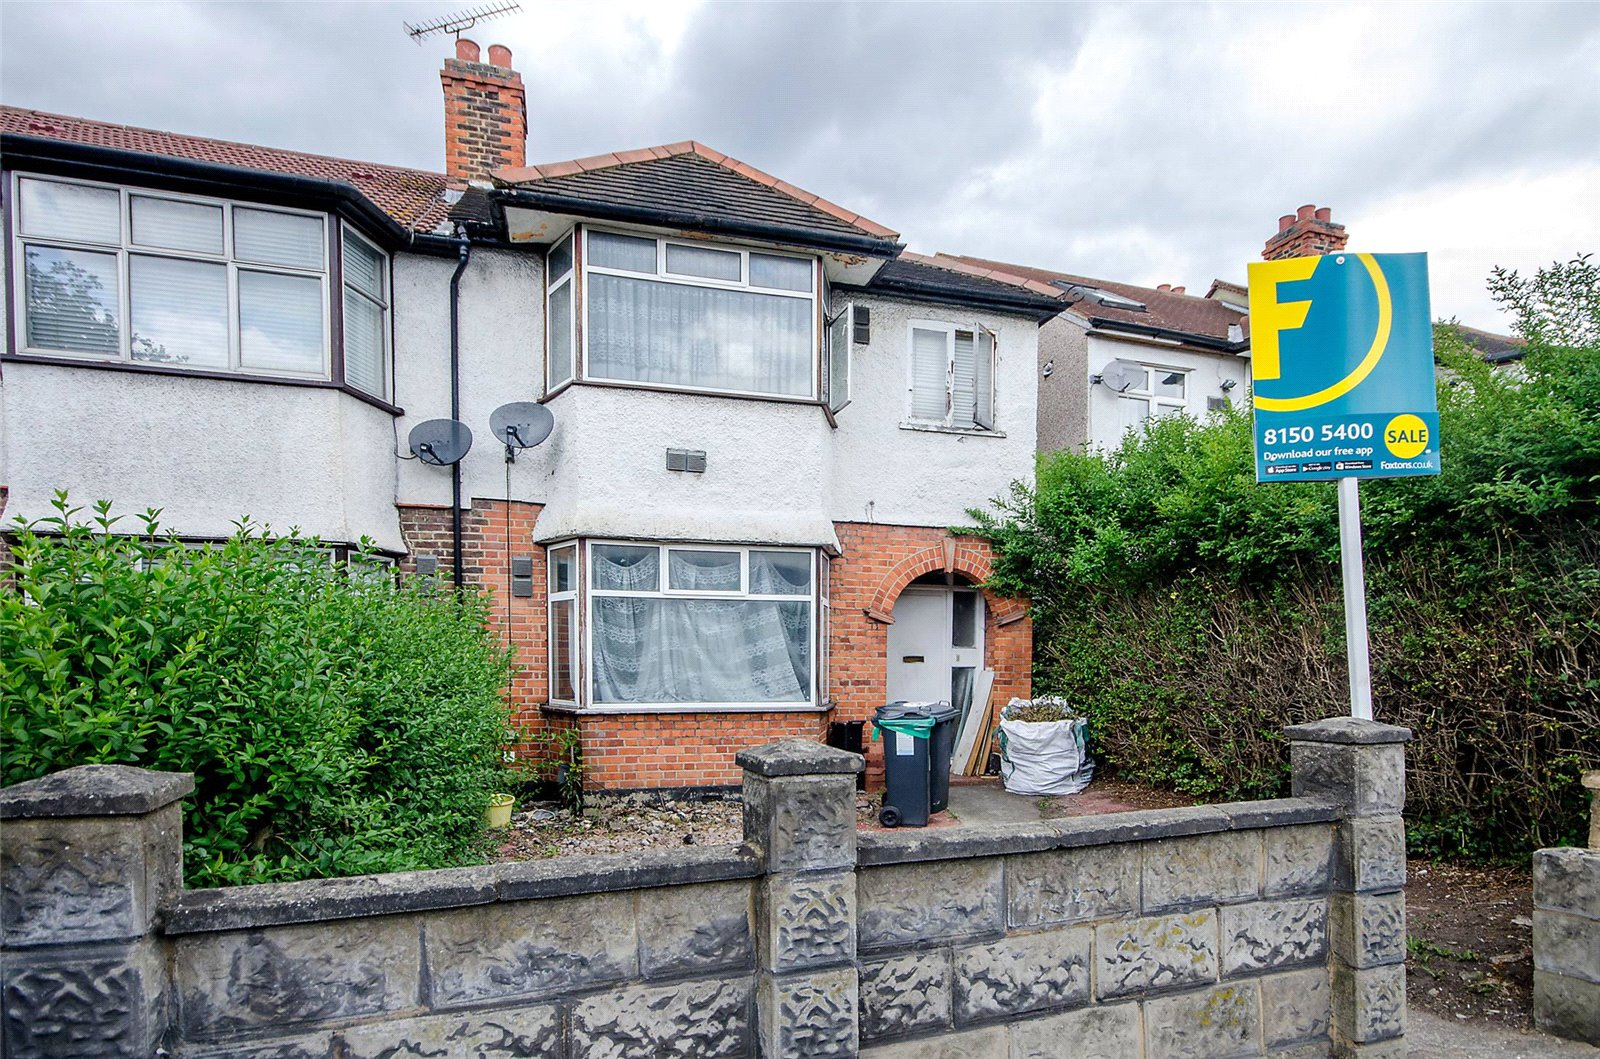 3 bed house for sale in Streatham - Property Image 1